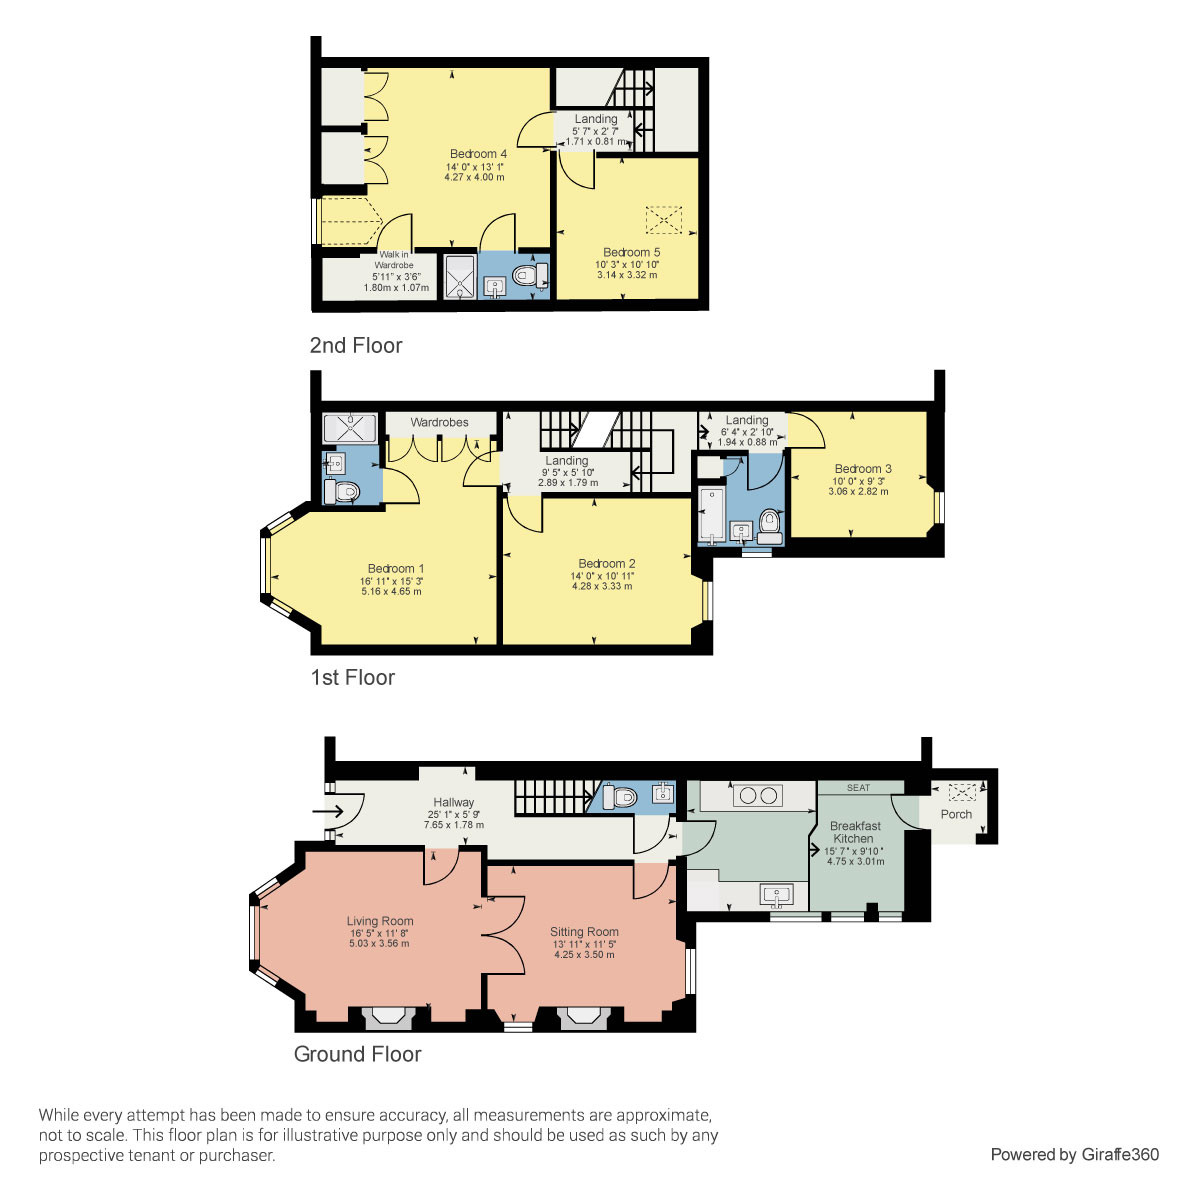 Floorplan 124 Burneside Road, Kendal, Cumbria LA9 4RZ